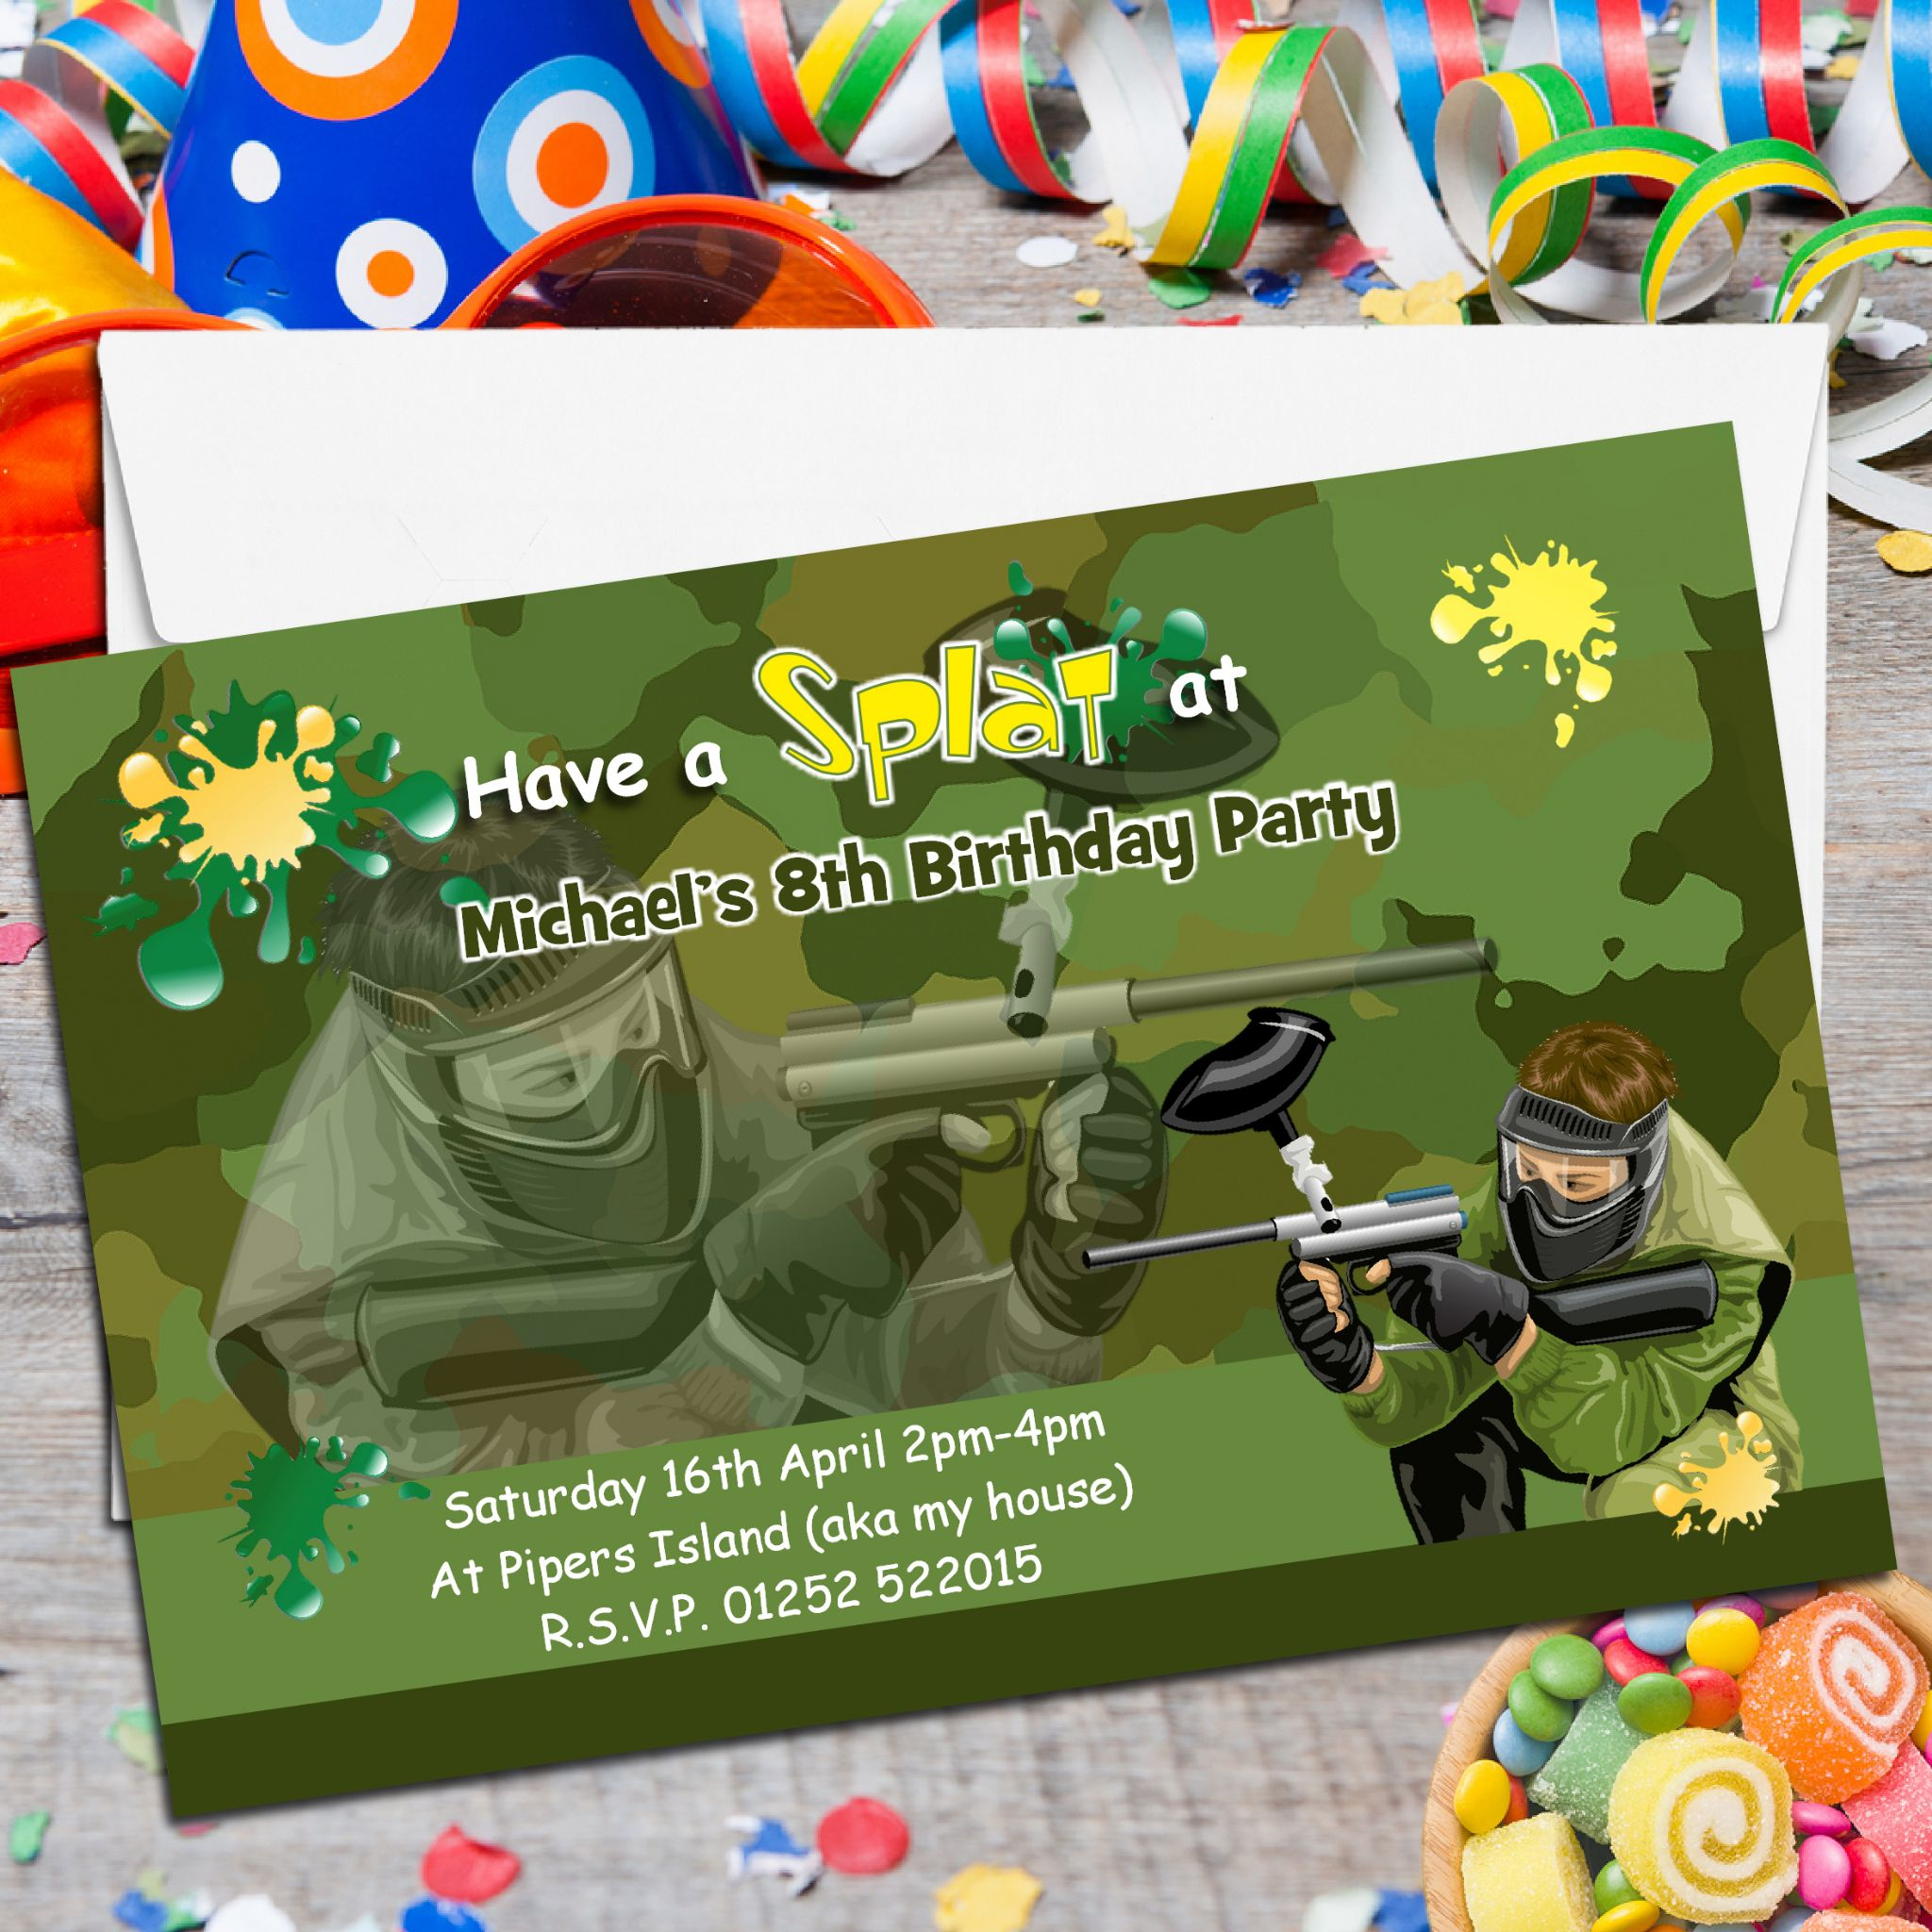 10 Personalised Paint Ball Birthday Party Invitations N117